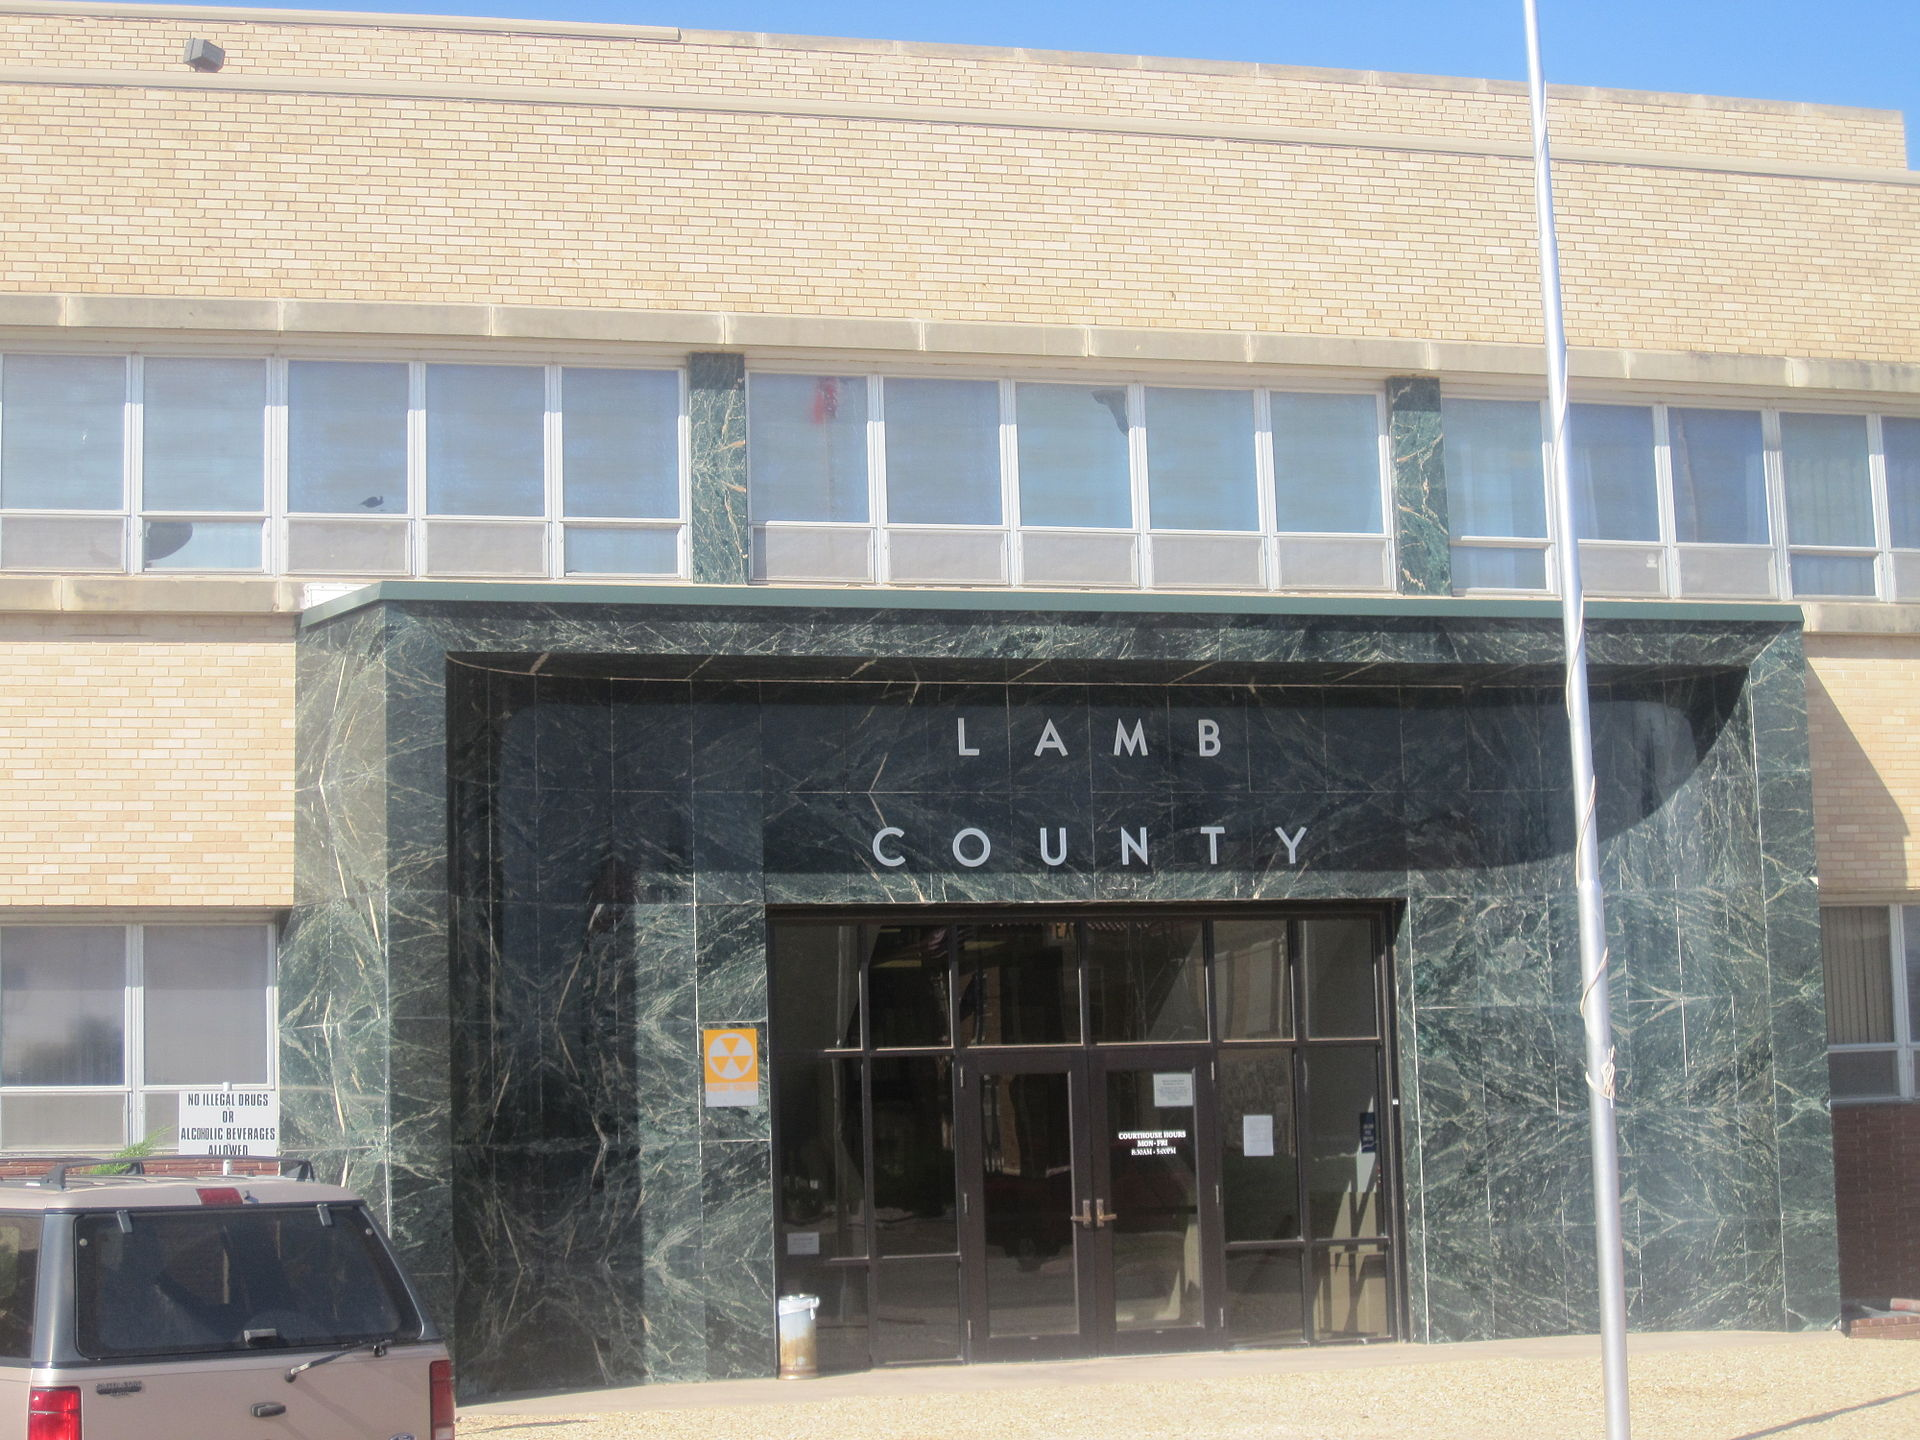 lamb county dating Page 2 | realtorcom® haslamb county homes for sale and property info quickly find your new home with our lamb county, tx real estate listings today.